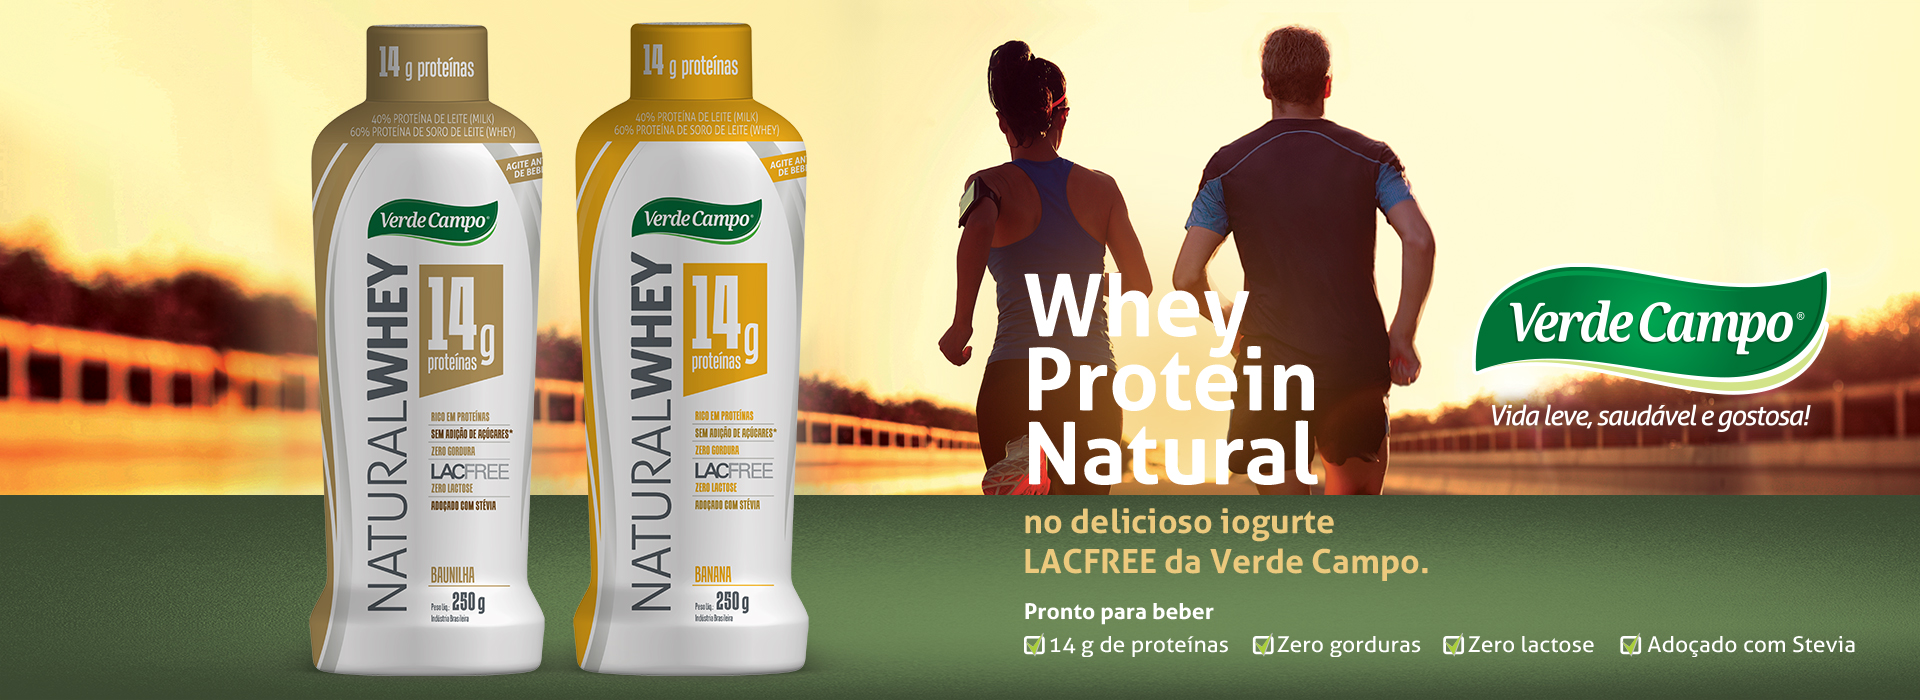 8583-BANNER-SITE-NATURAL-WHEY_B02